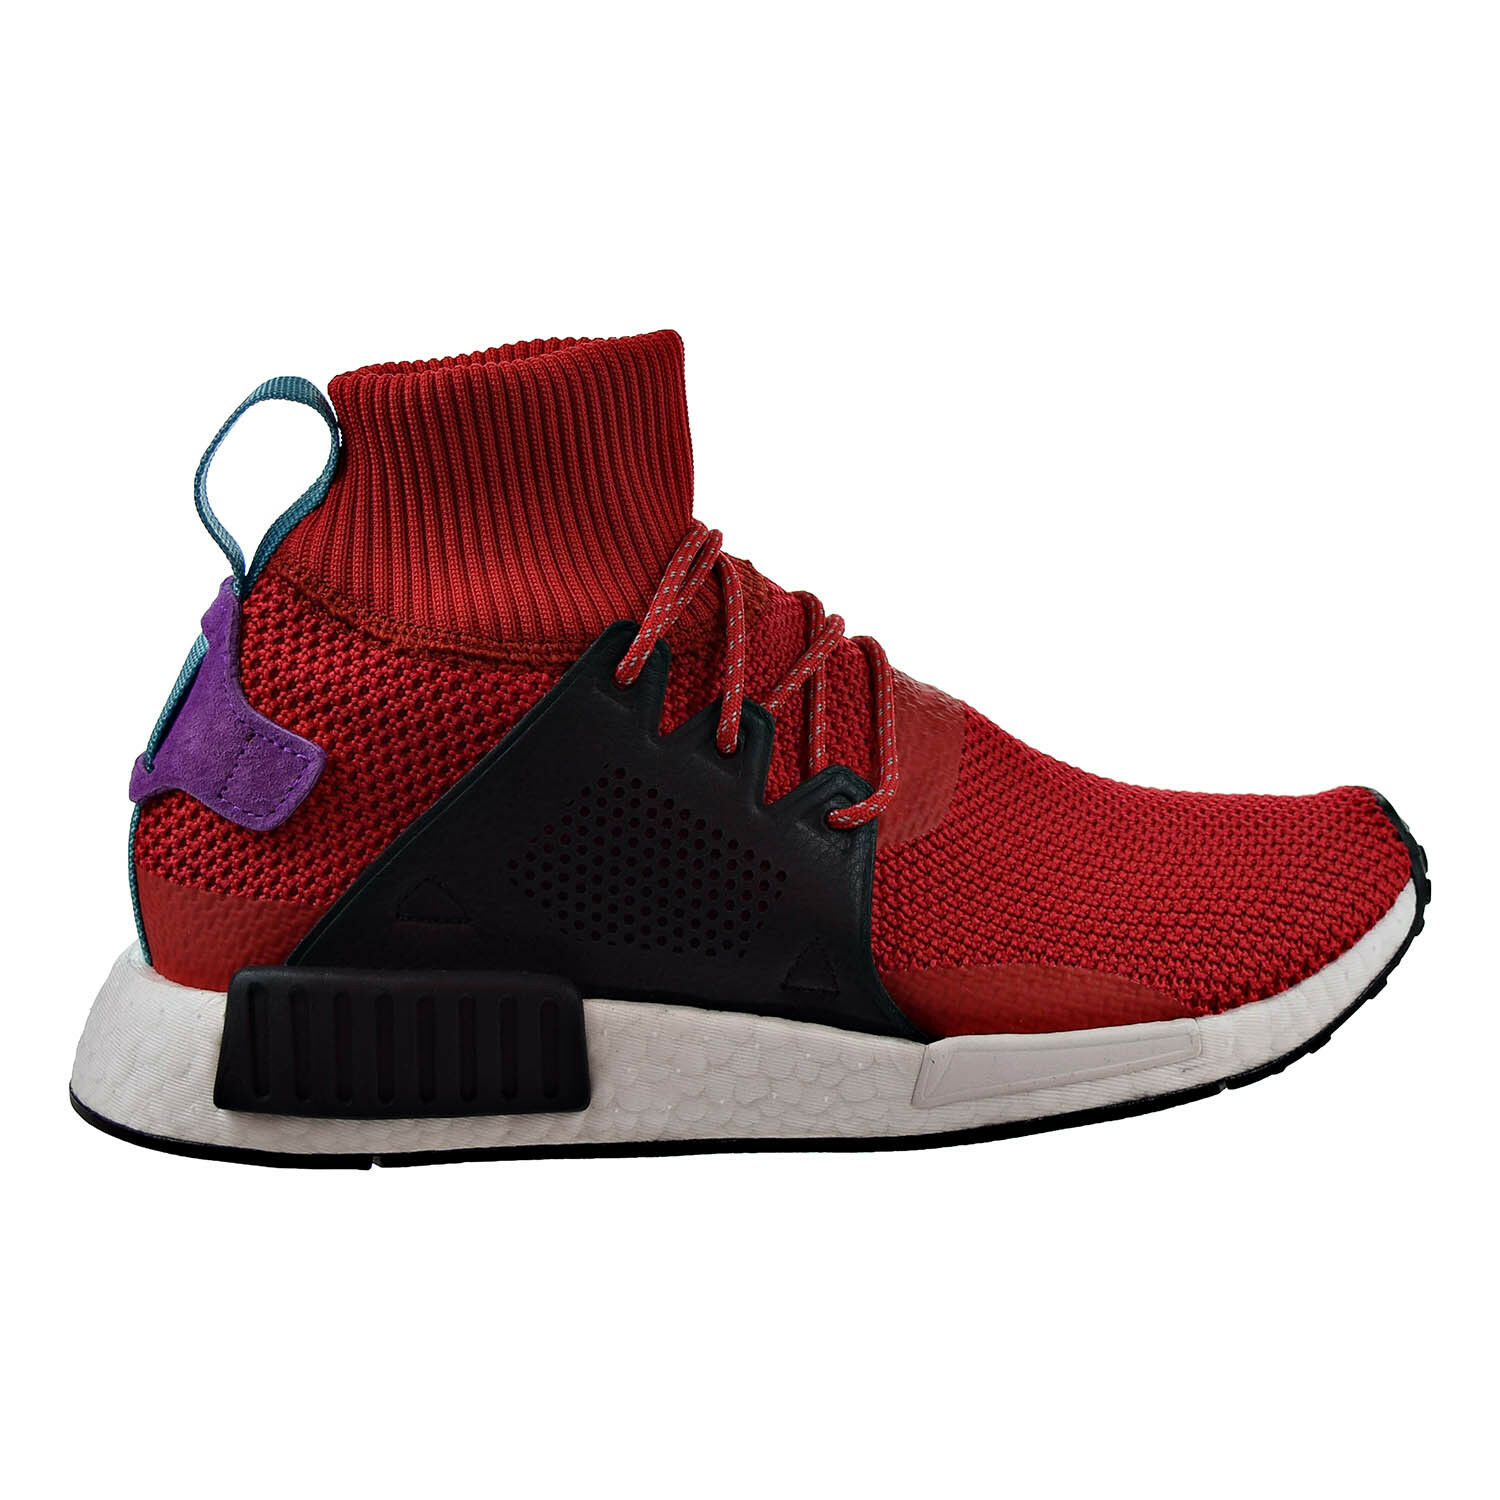 Adidas NMD_XR1 Winter Mens Shoes